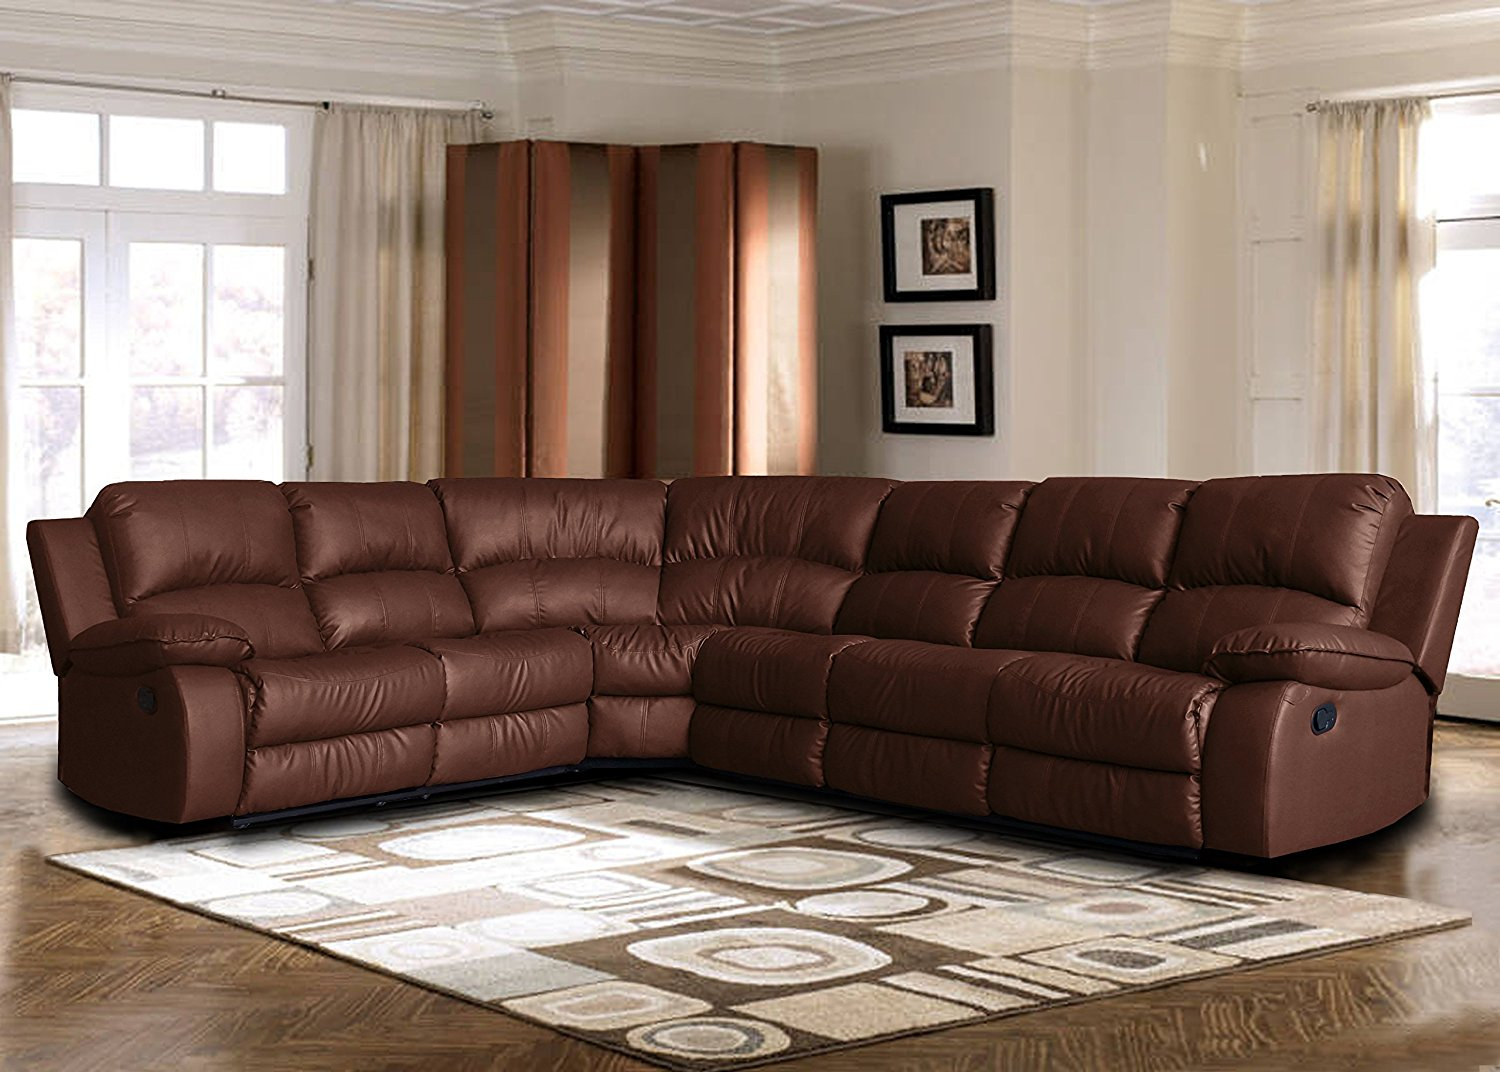 Extra Large Leather Reclining Corner Sectional Sofa For Within Big Sofa Chairs (View 4 of 15)